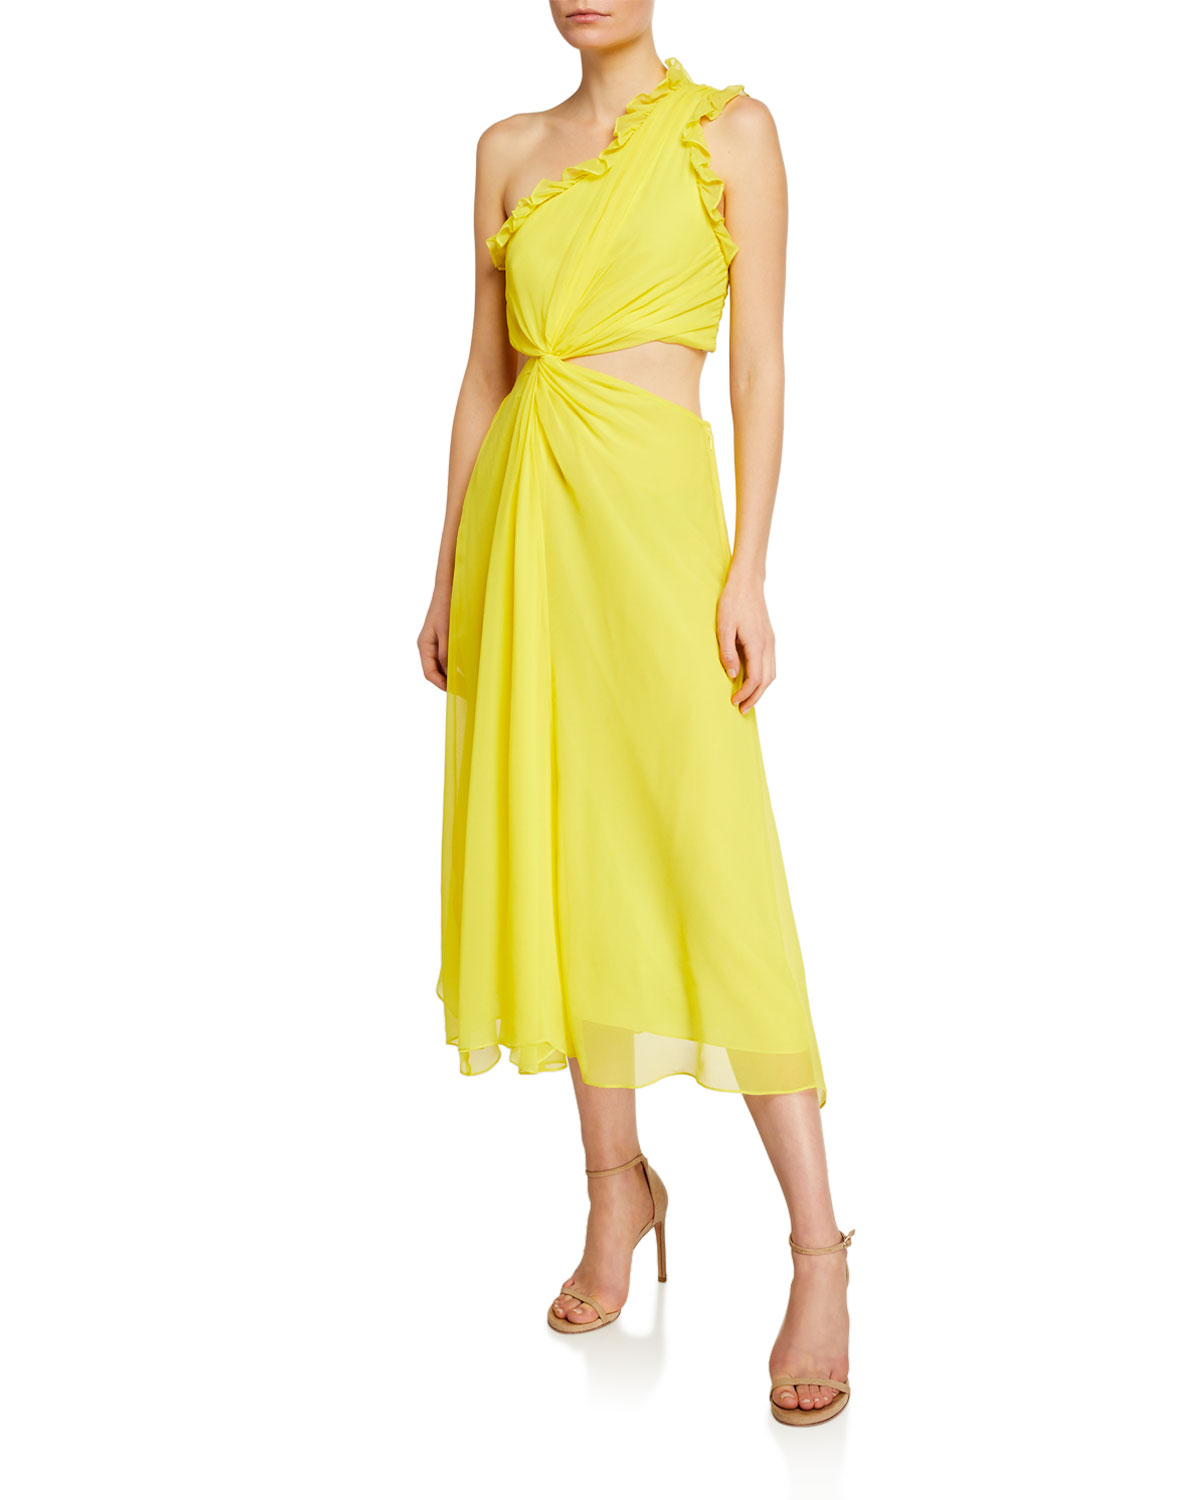 cinq a sept Corinne Ruffled Cutout One-Shoulder Midi Dress